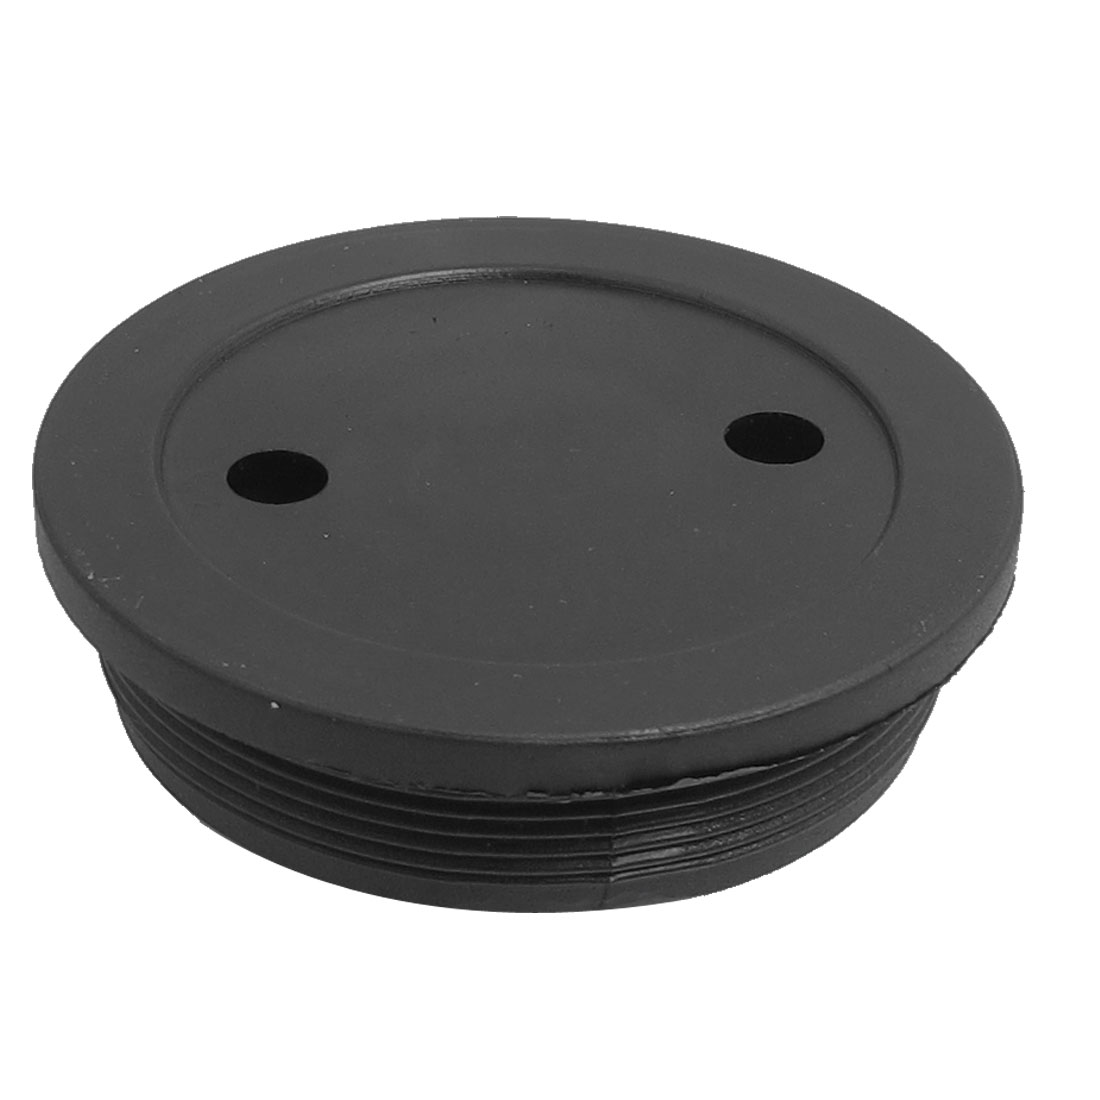 Black Plastic Oil Cap Cover for Makite HM0810 Electric Hammer